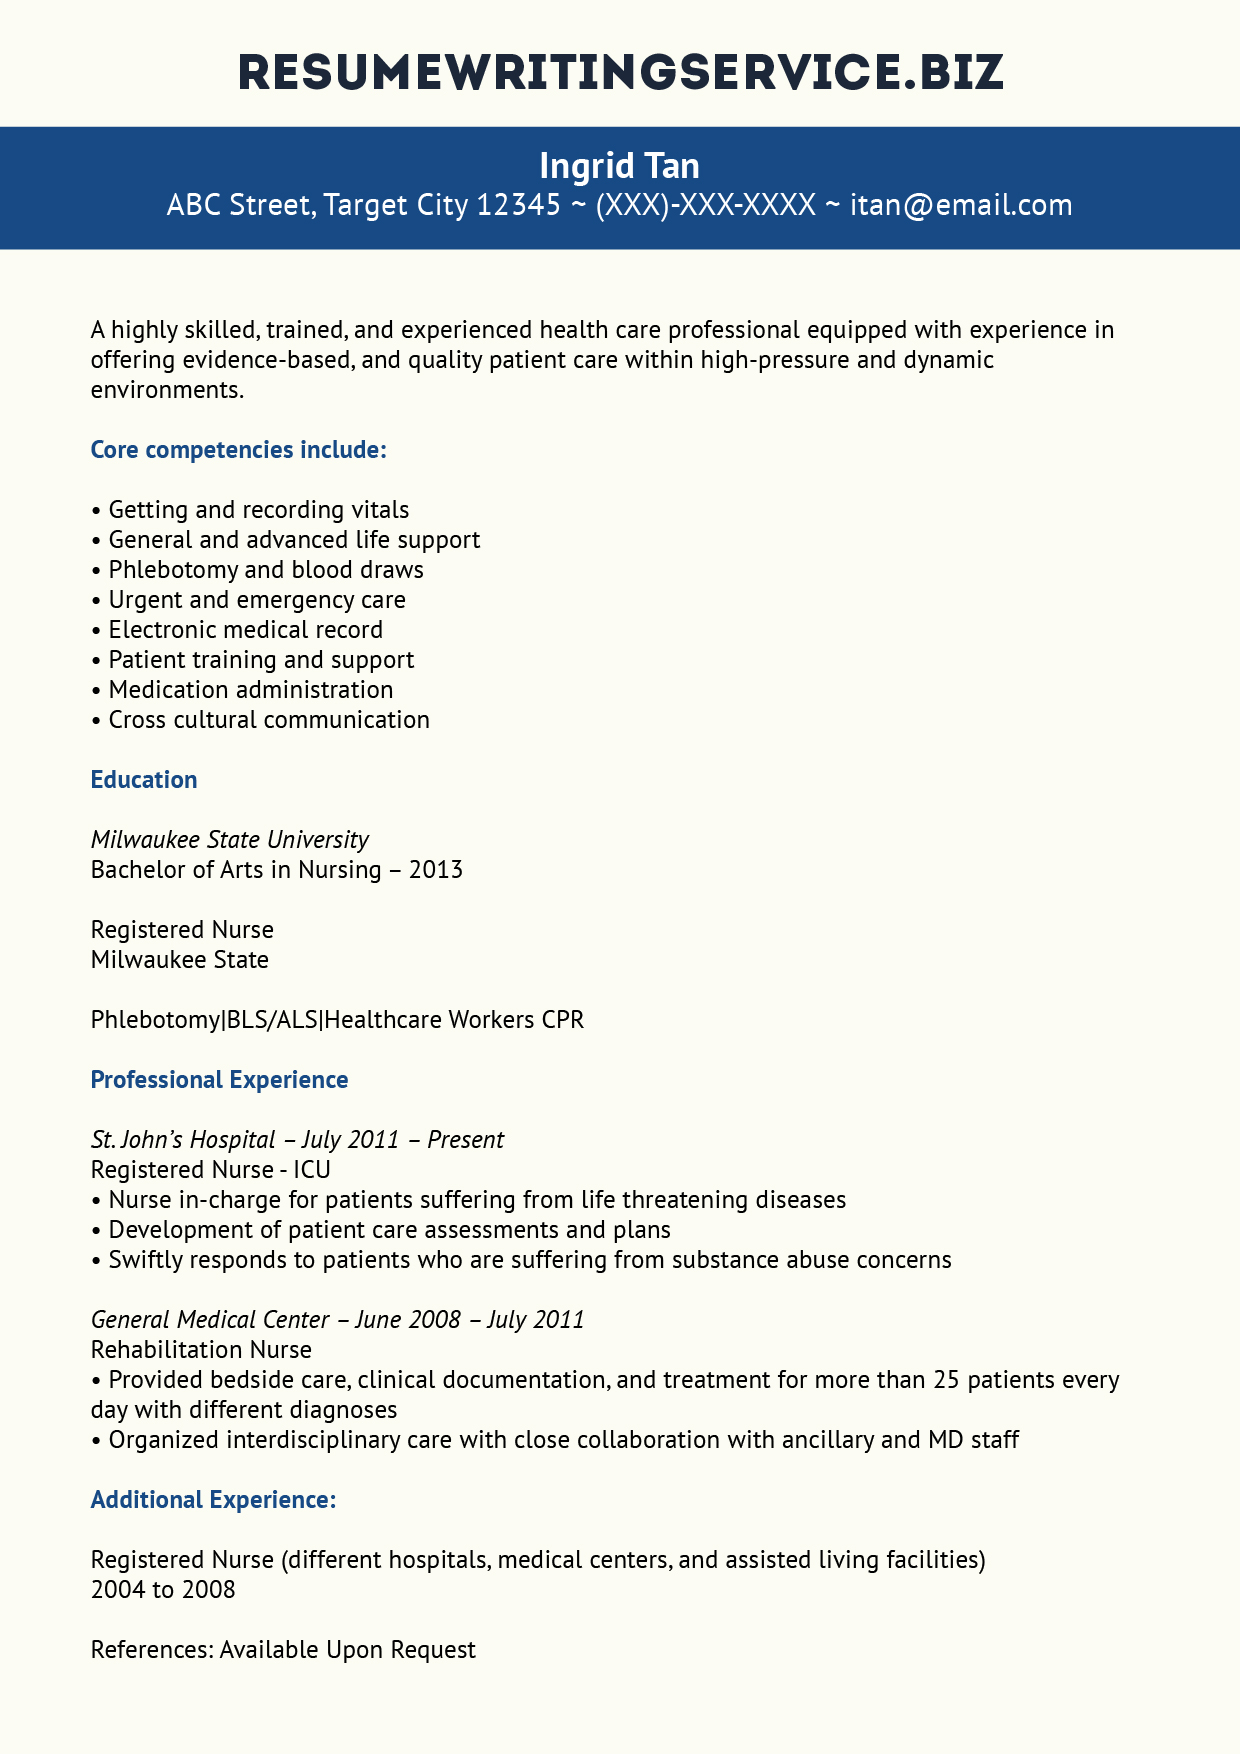 Our Experienced Nurse Resume Example Resume Writing Service